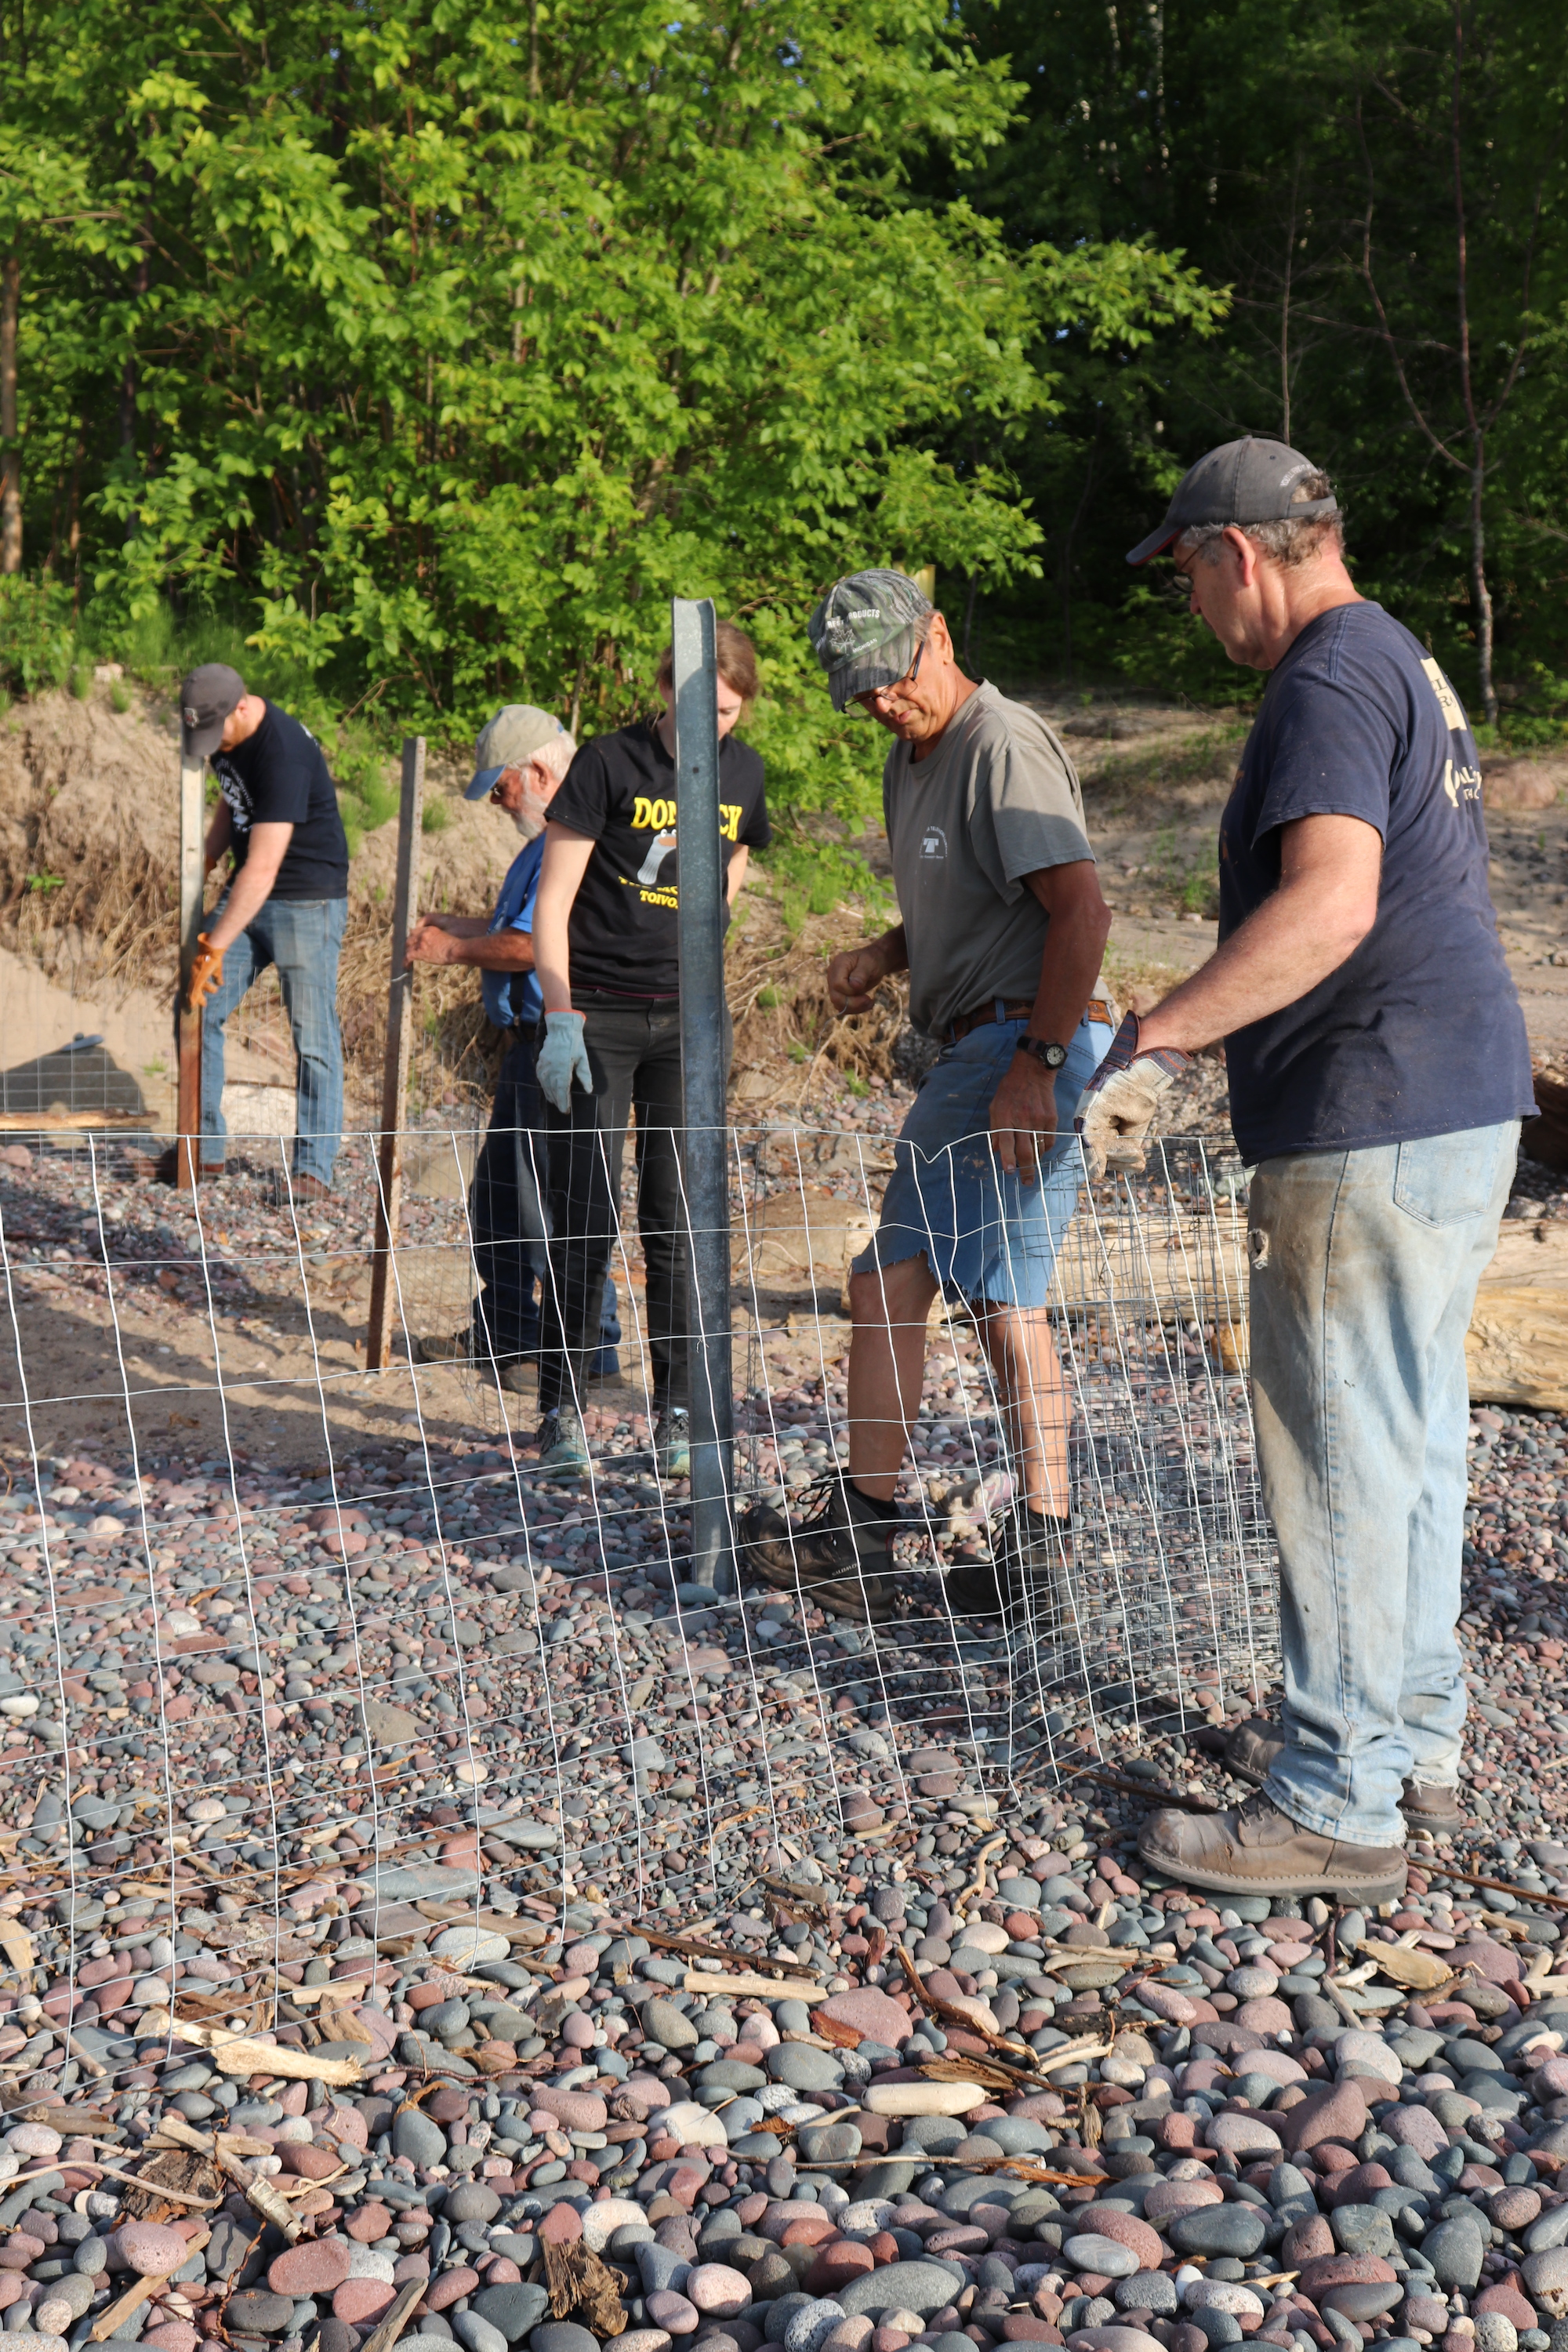 Volunteers unroll the wire mesh to build a safety fence around the bonfire.